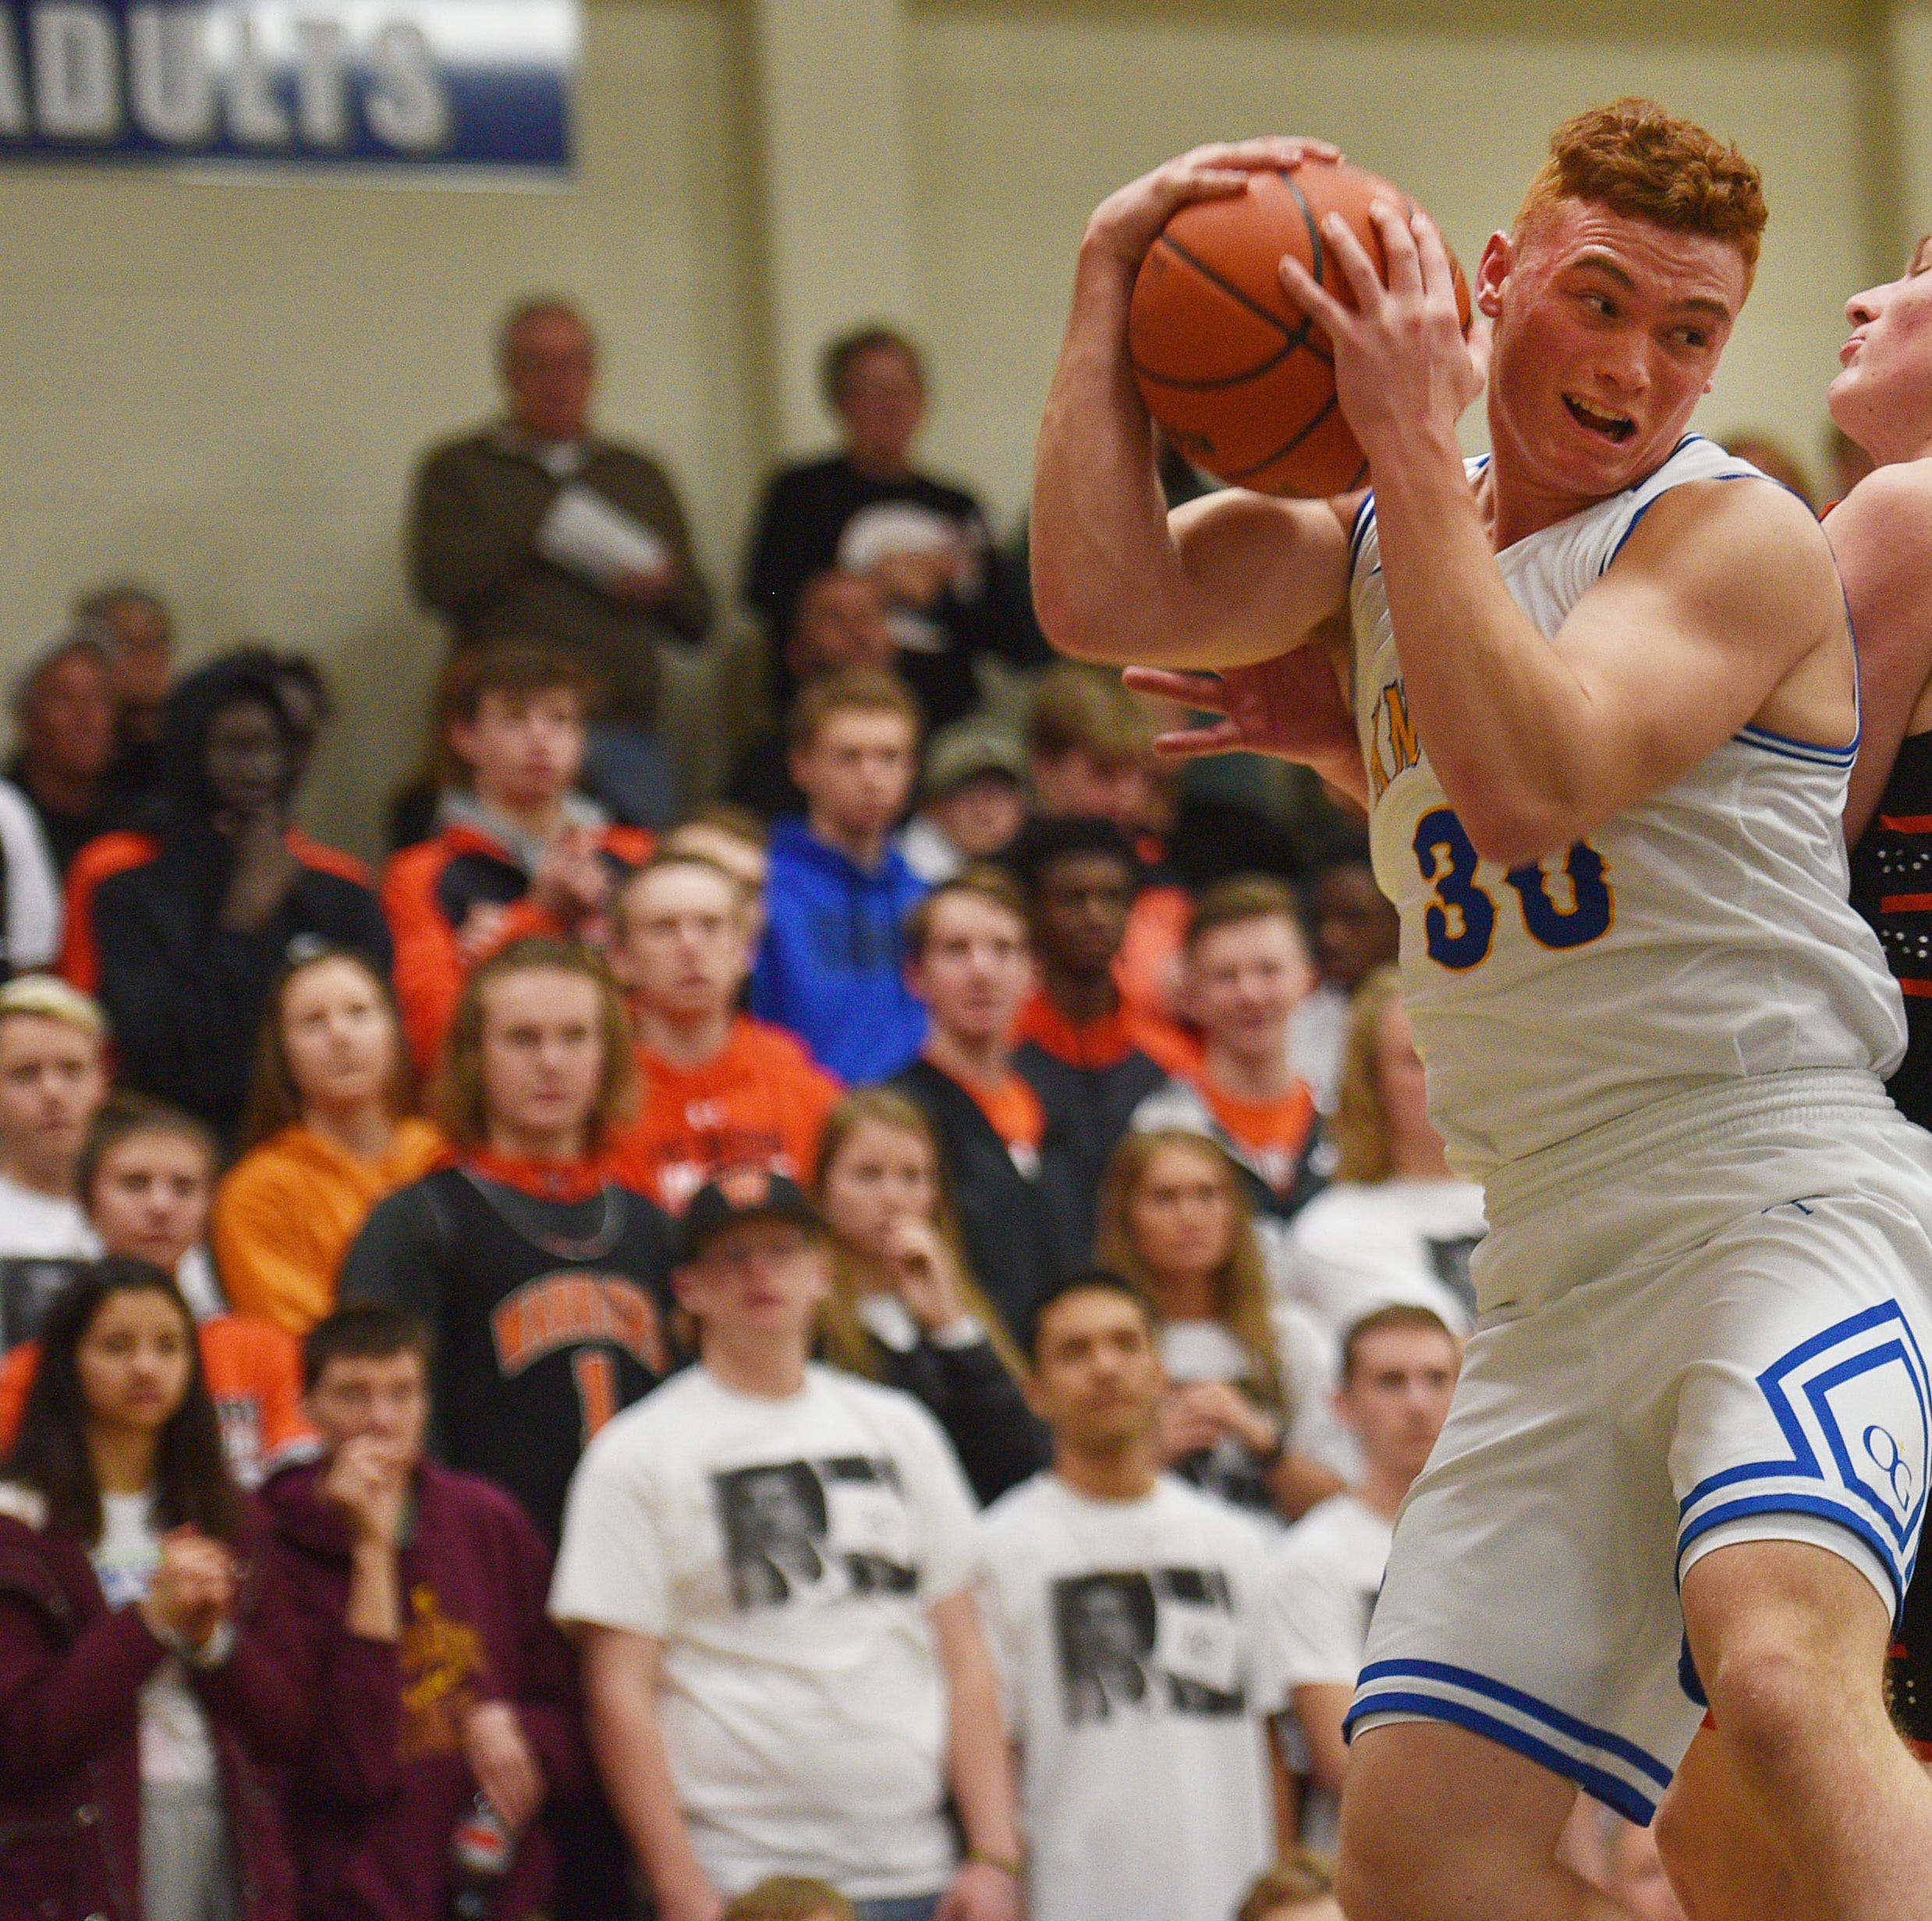 On Preps: No. 5 O'Gorman takes down No. 2 Yankton in mid-season classic